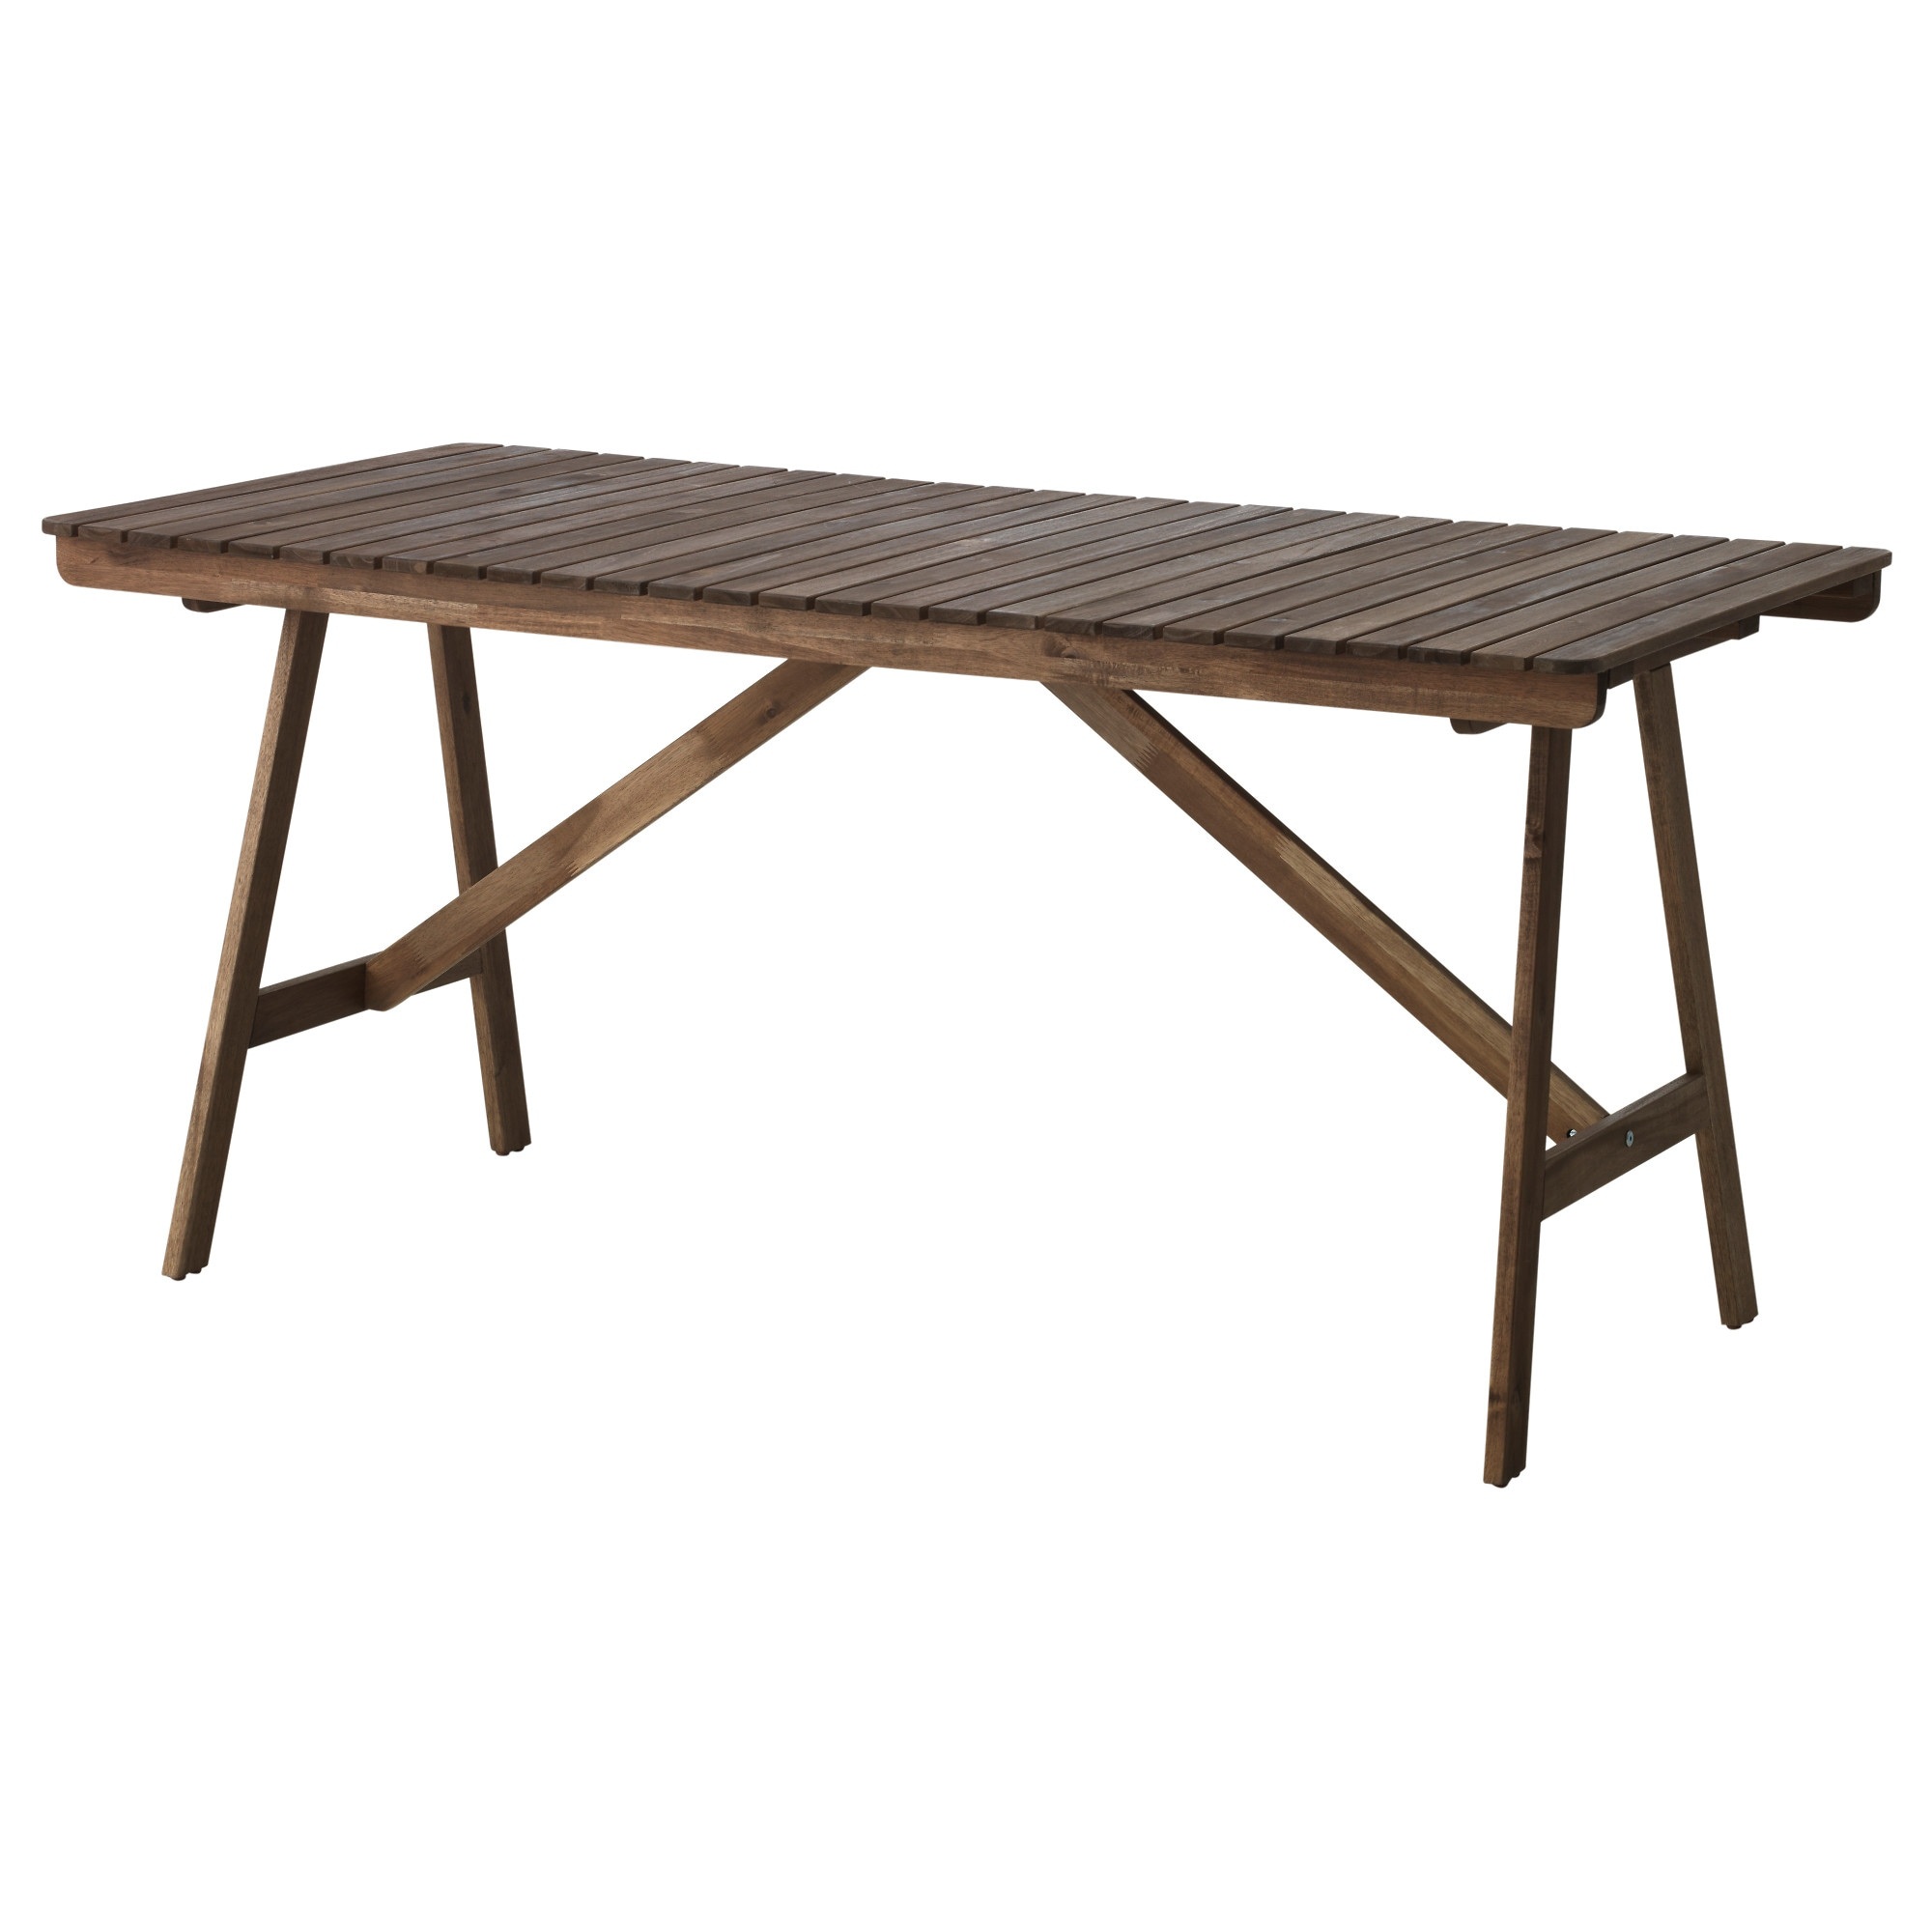 outdoor table. Outdoor Table N